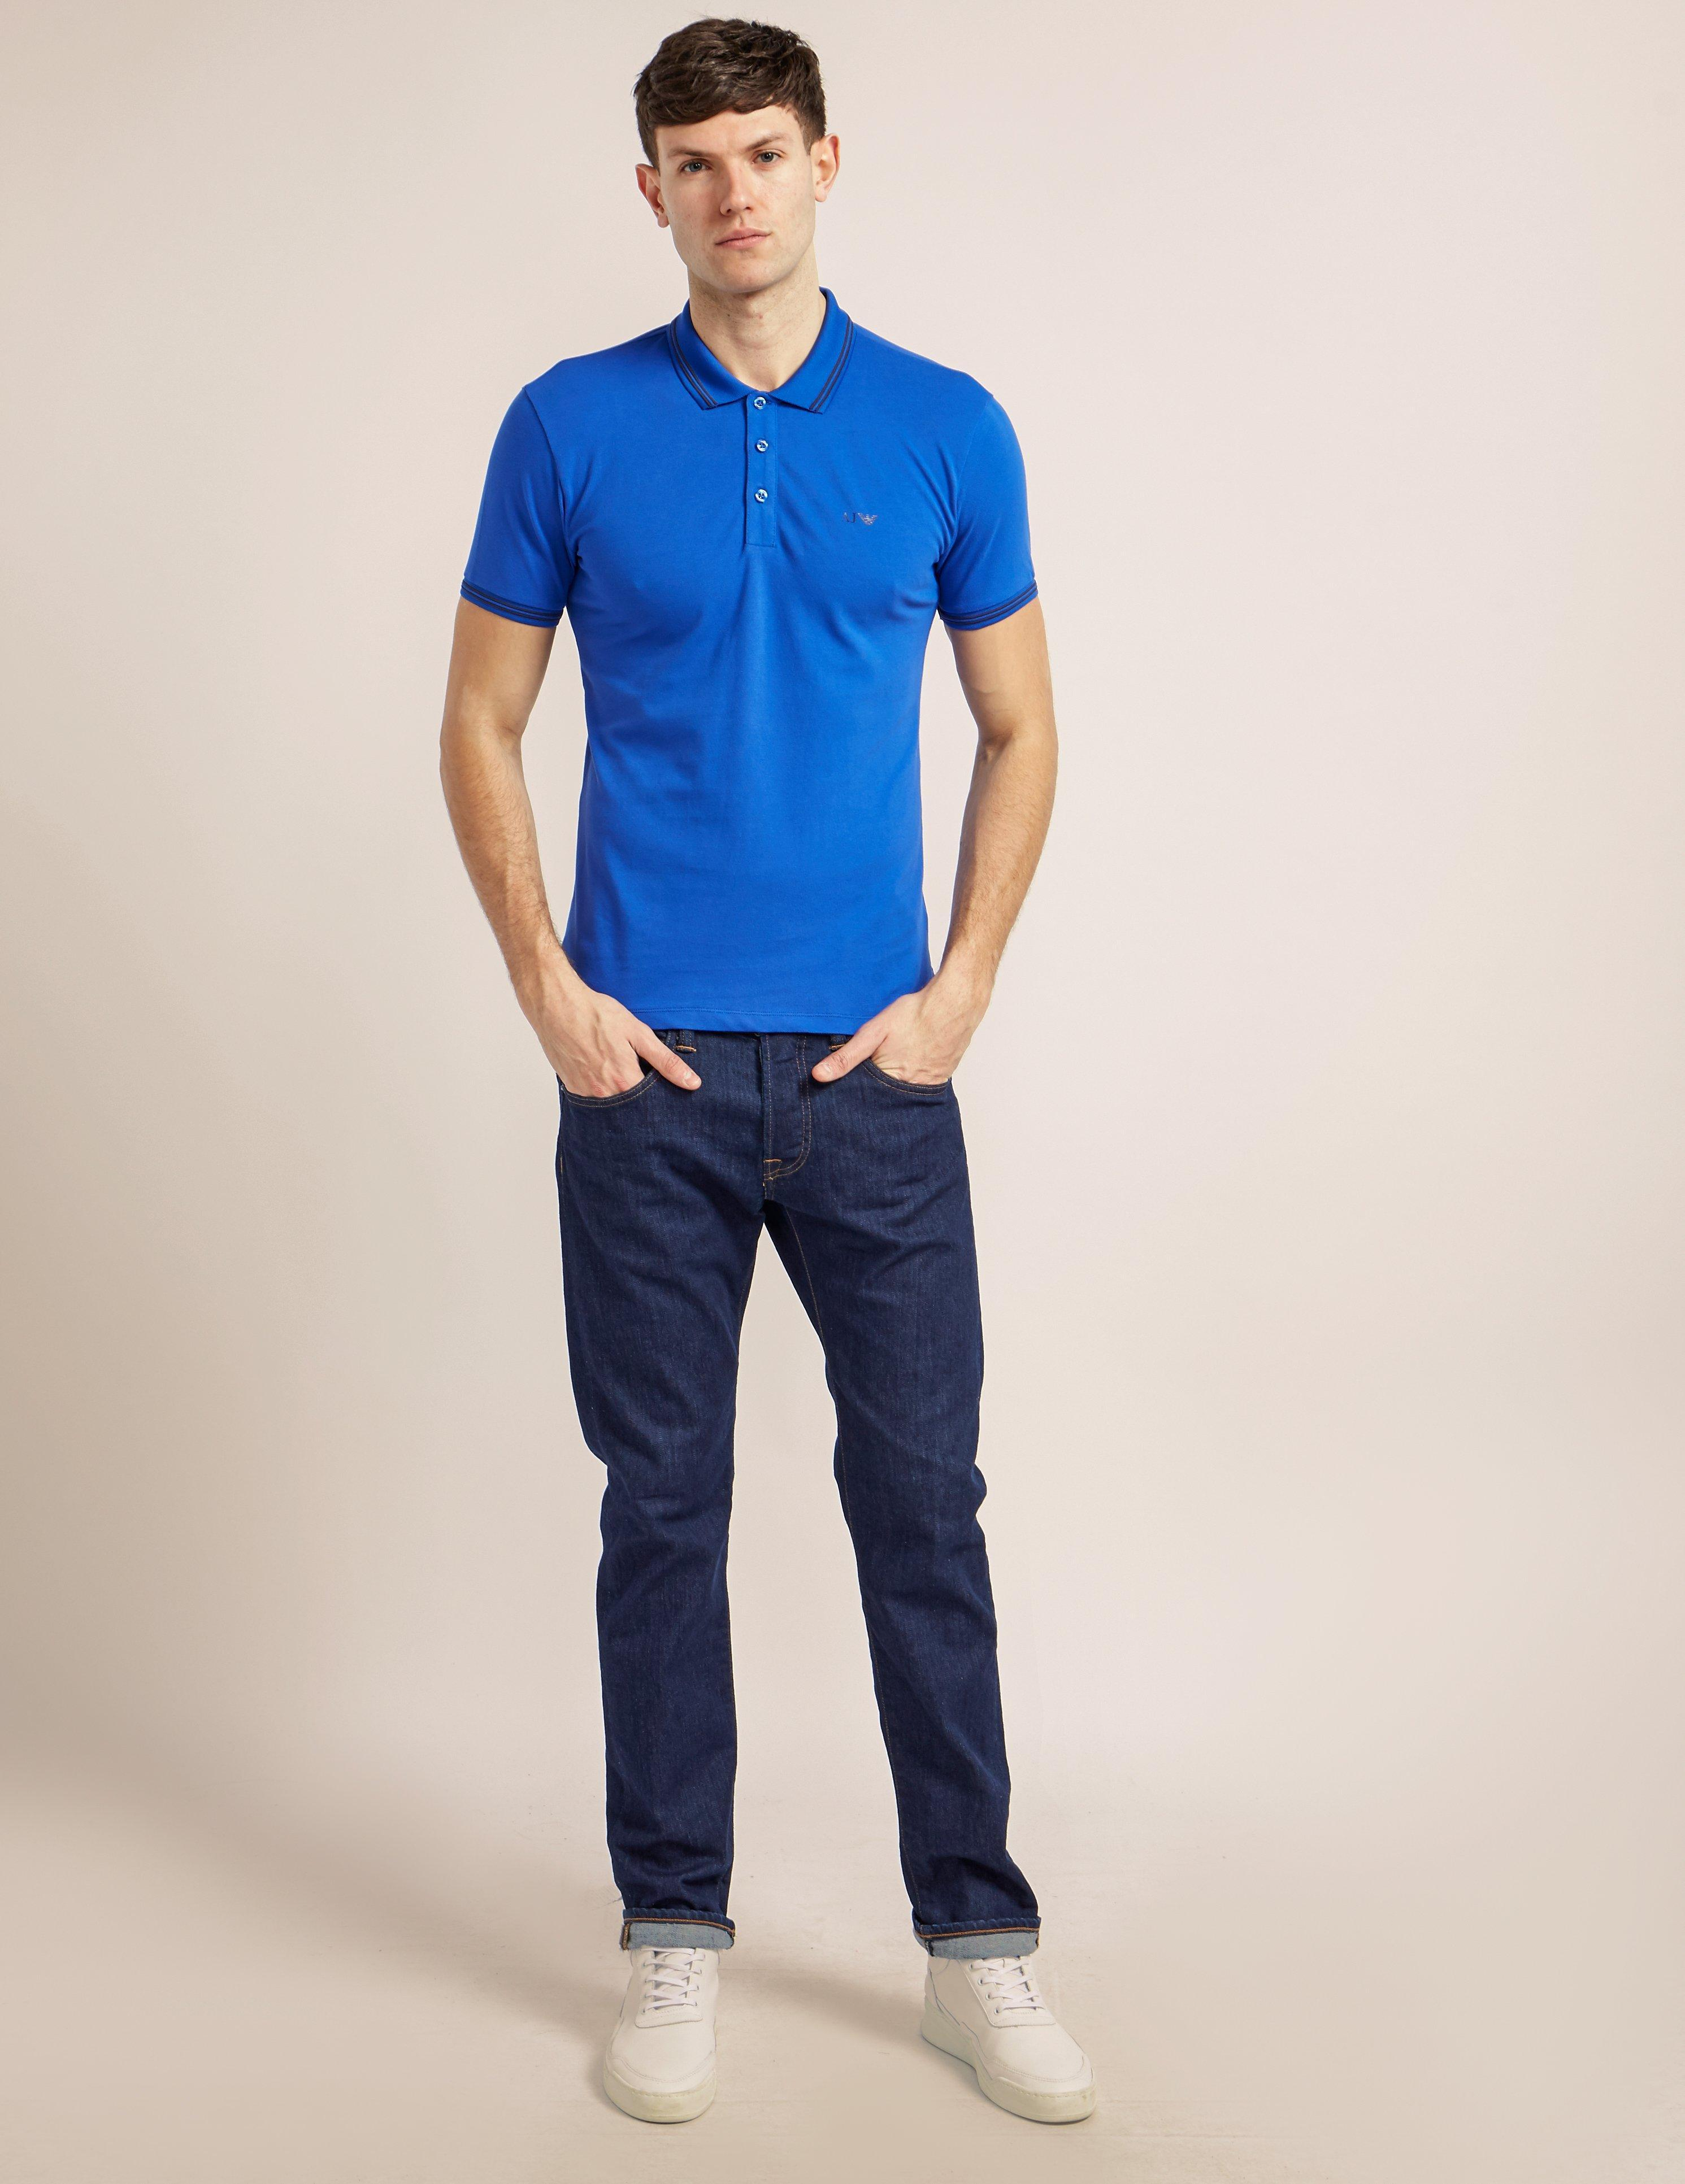 Lyst armani jeans tipped short sleeve polo shirt in blue for Polo shirt and jeans